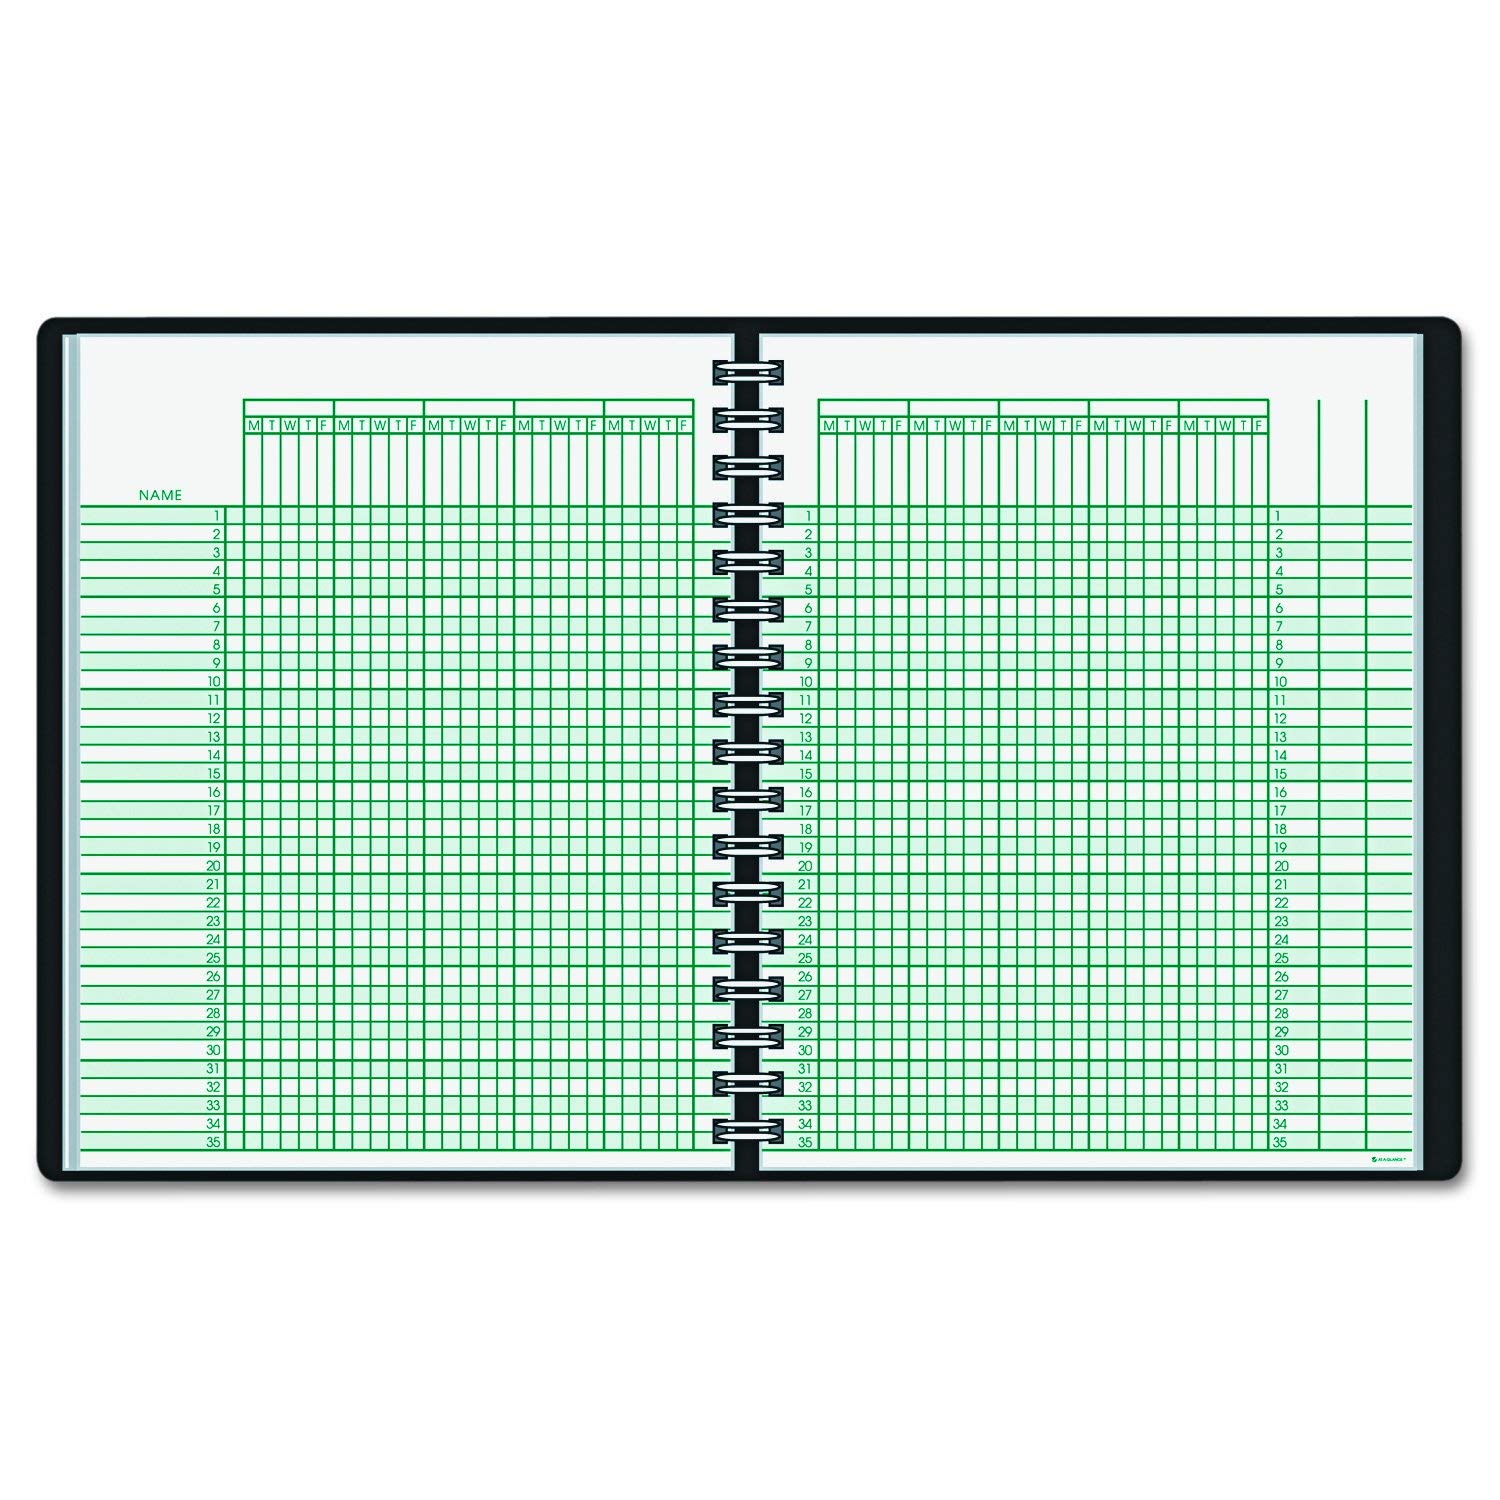 AT-A-GLANCE 8015005 Undated Class Record Book, 10 7 8 x 8 1 4, Black, An organized format for teachers to... by